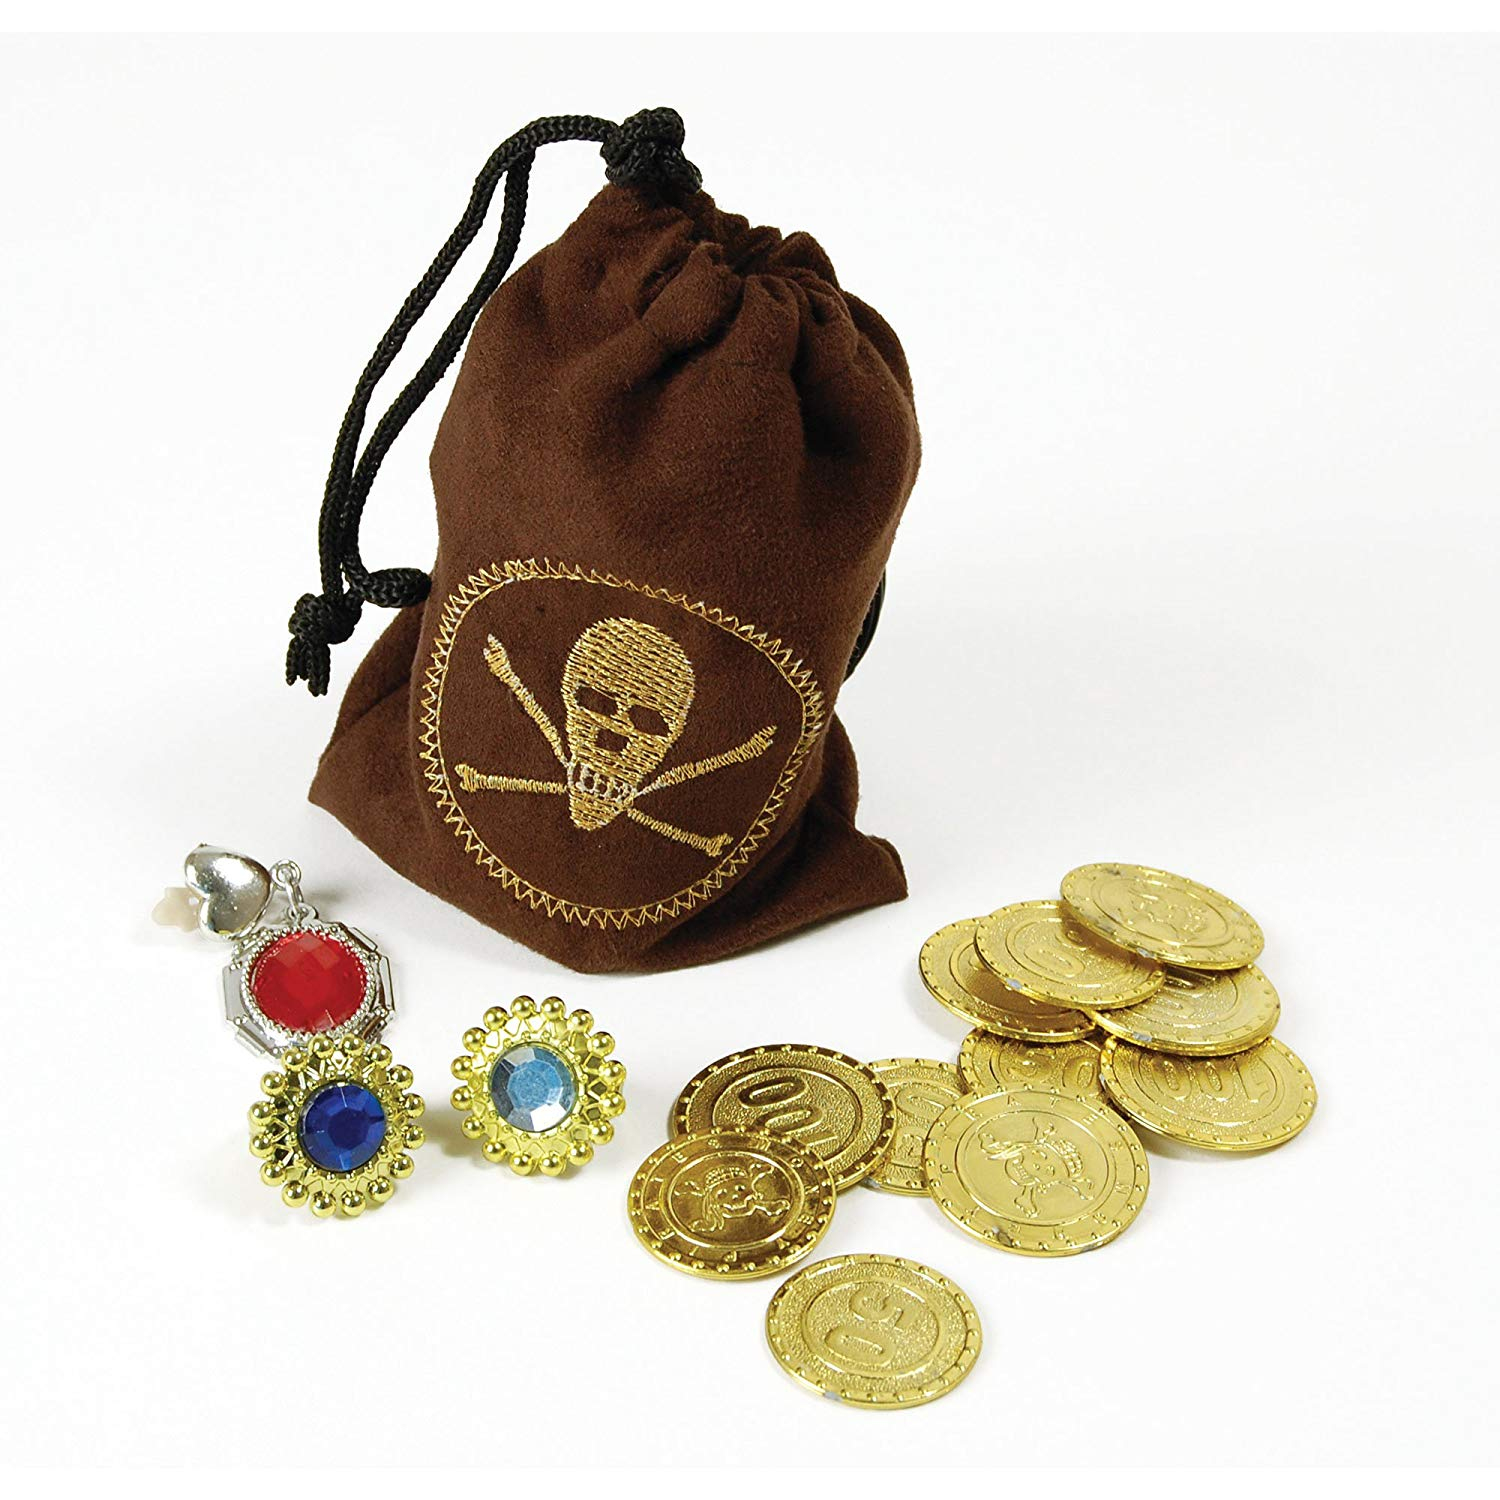 Bristol Novelty BA1089 Pirate Coins and Jewellery, Unisex-Adult, One Size